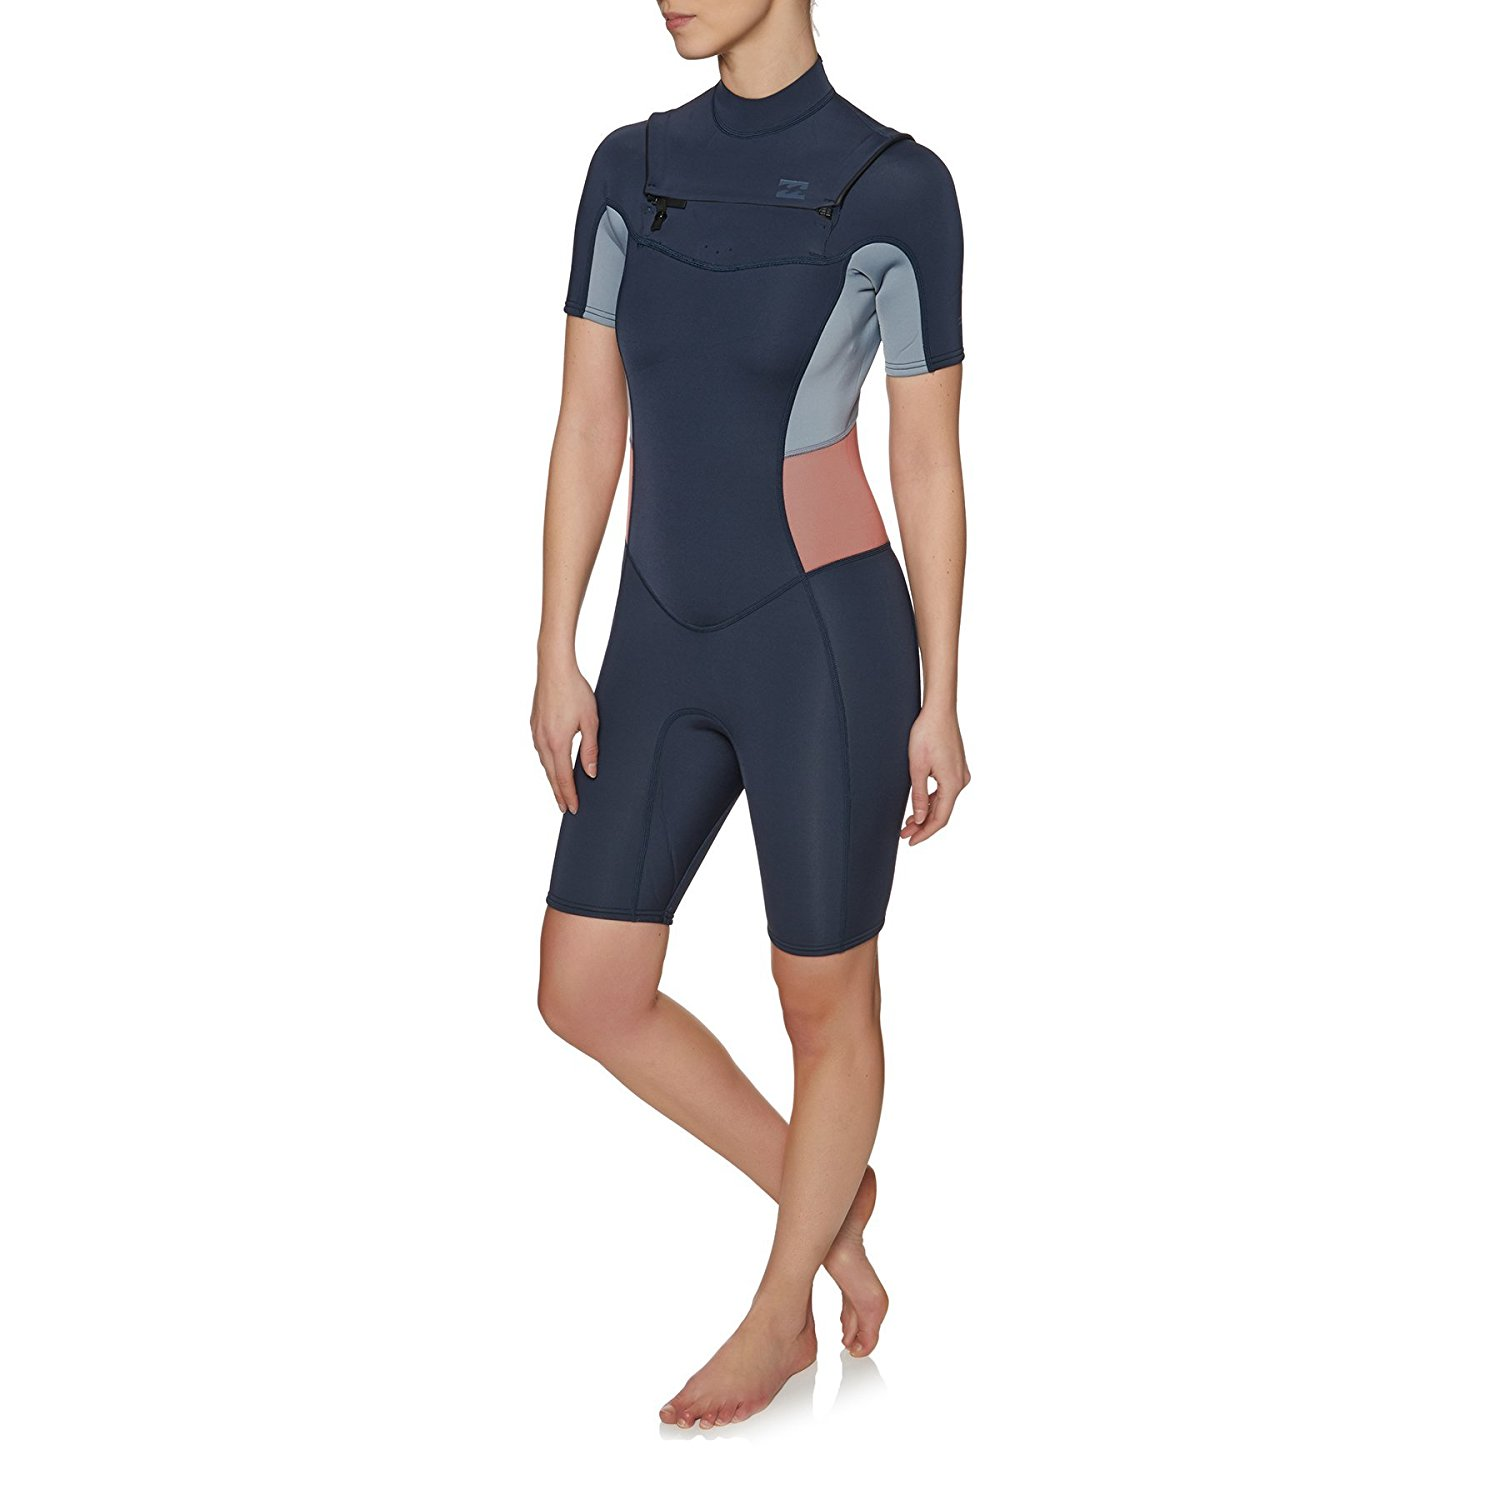 1a5a0a074c Get Quotations · Billabong 2mm 2018 Synergy Short Sleeve Chest Zip Shorty  Wetsuit 8 Slate